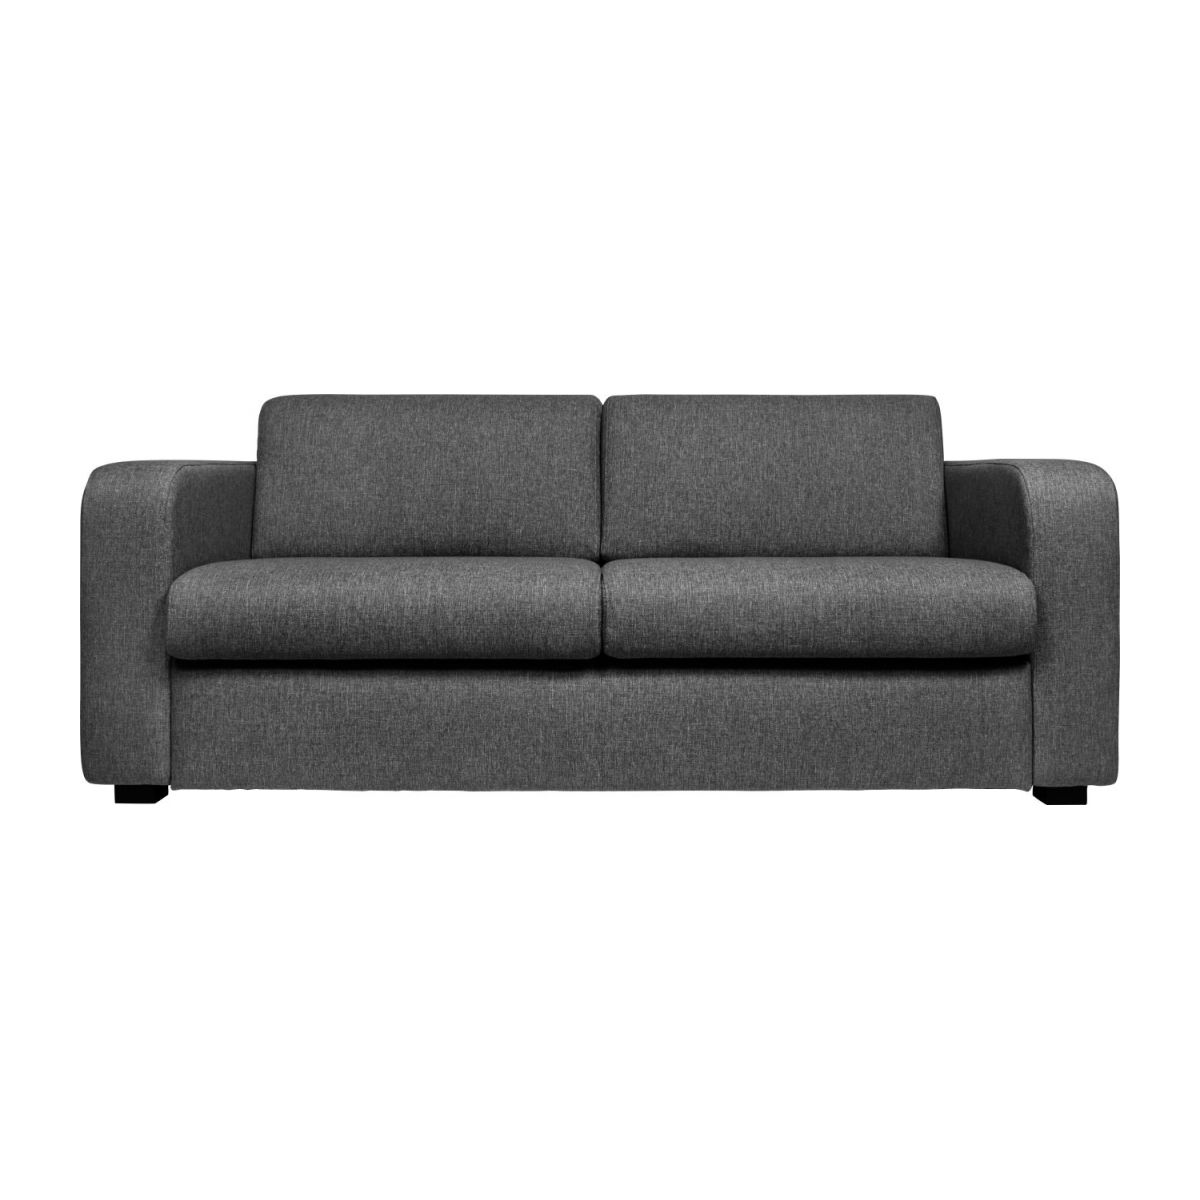 3-seater fabric sofa n°3